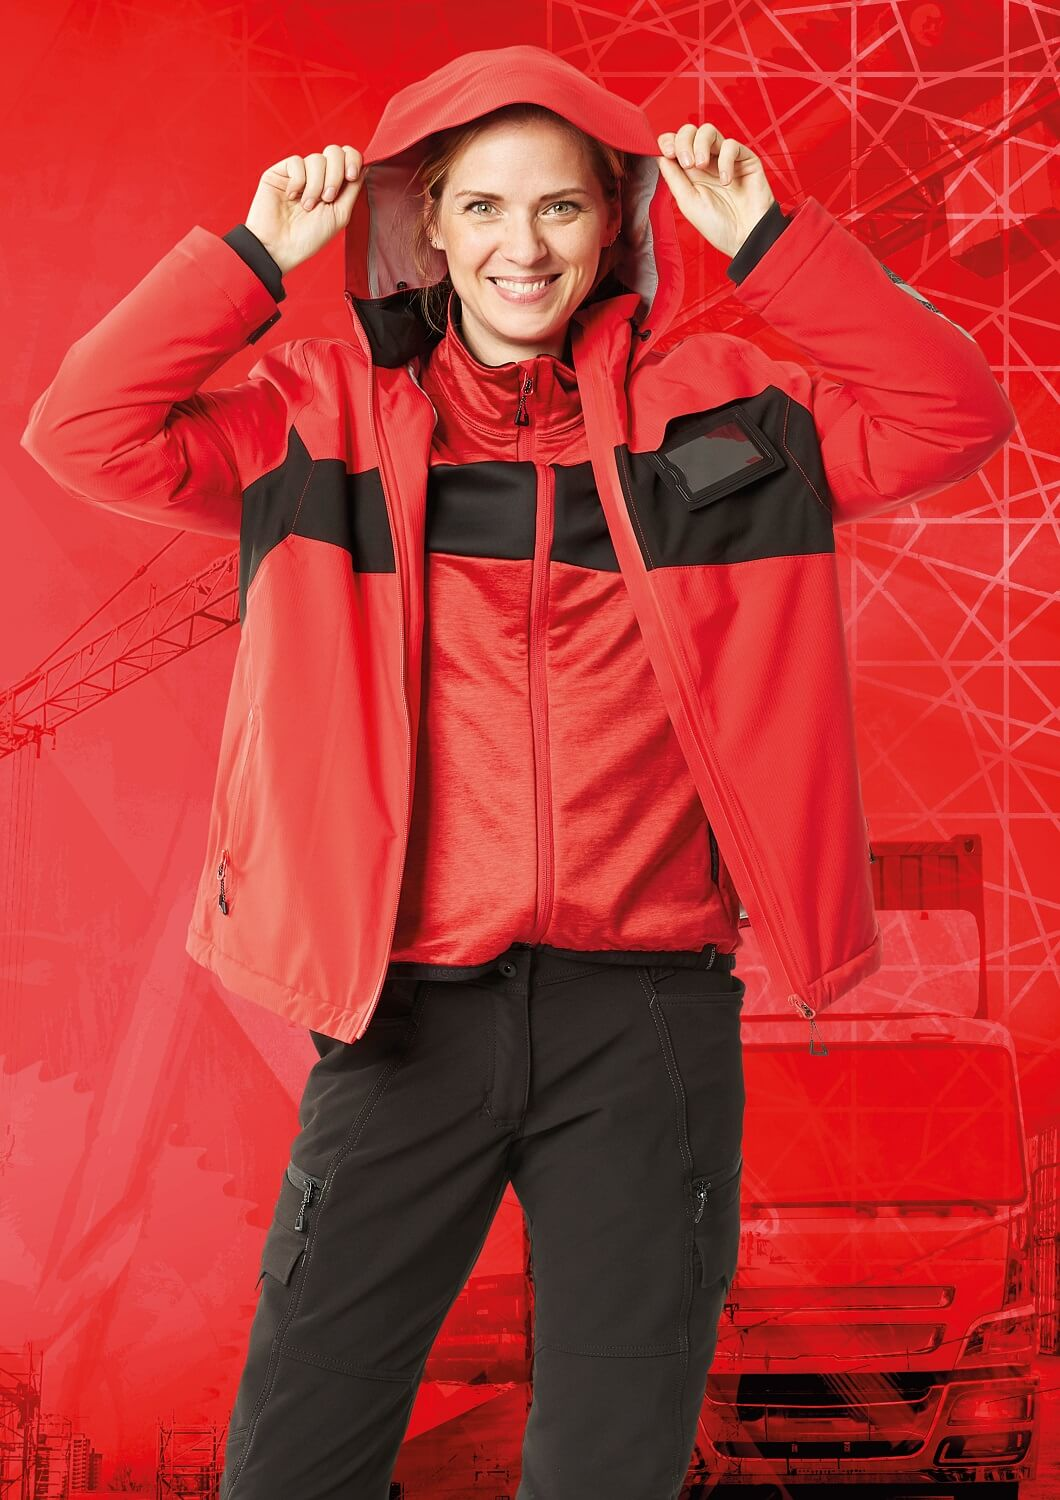 Vestes pour femme , Sweat & Pantalon - MASCOT® ACCELERATE - Rouge